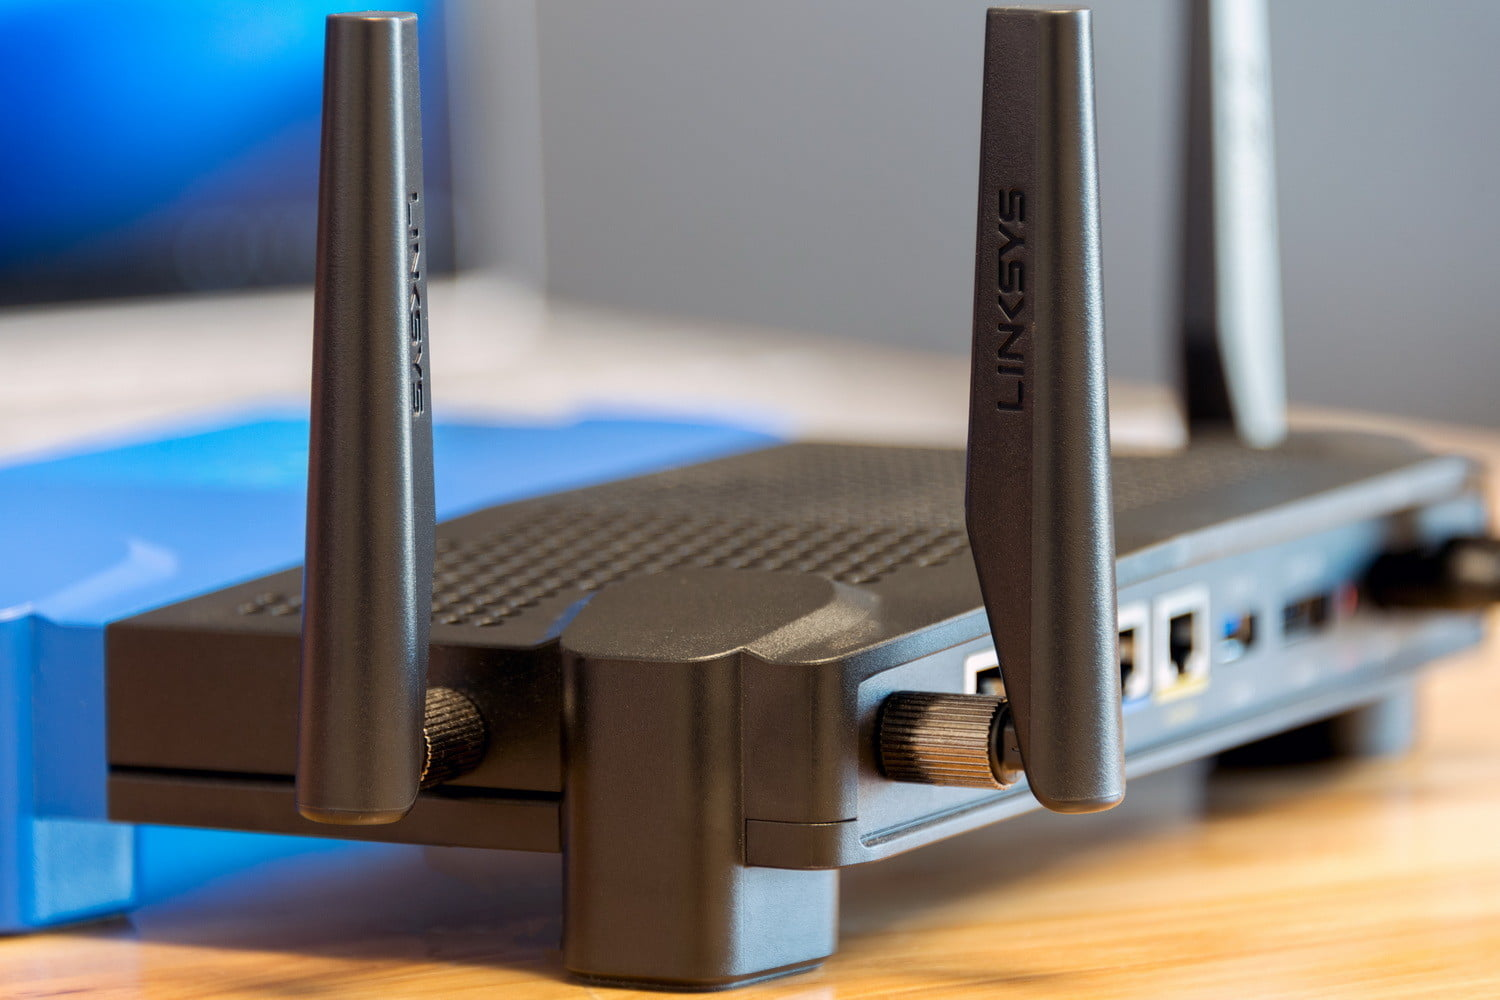 How To Boost Wi Fi Speeds At Home By Moving Your Router Digital Trends Building Diagram For Wireless Routers The Linksys Wrt3200 Acm Review